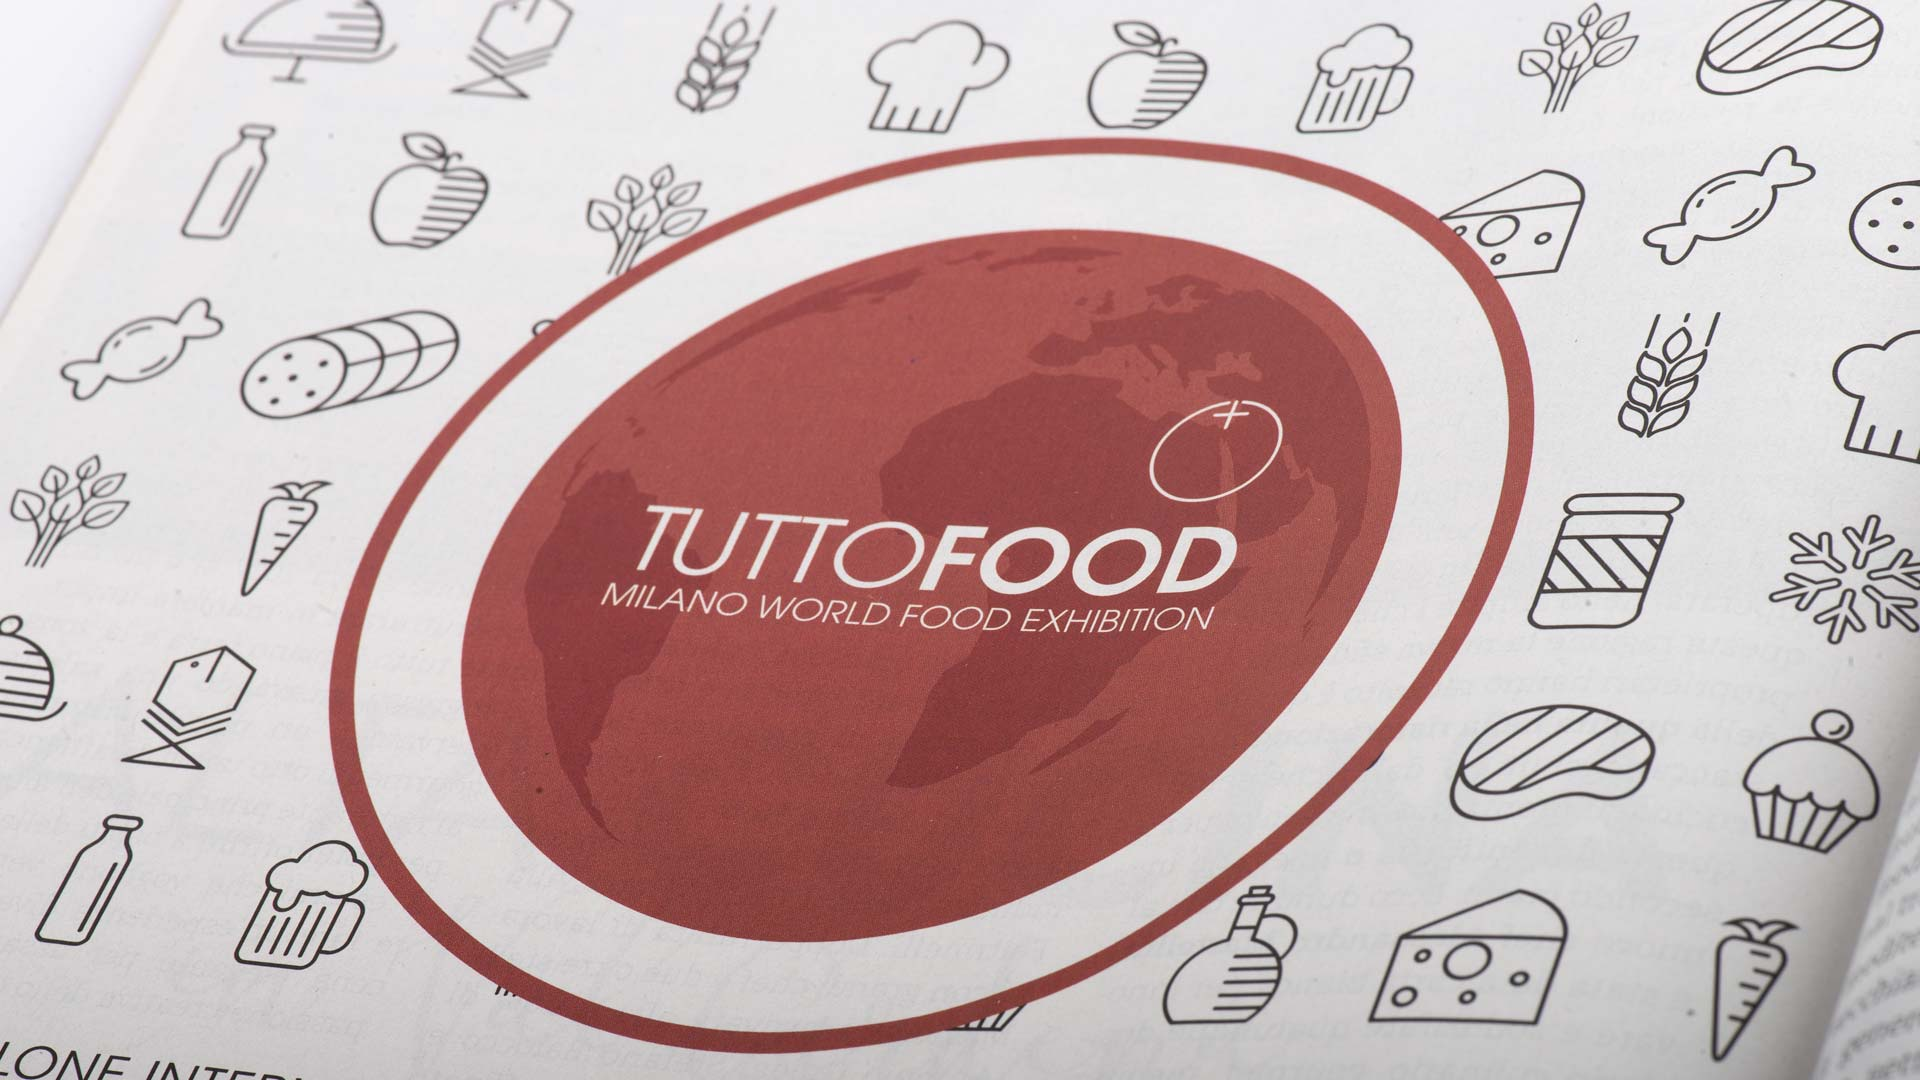 TuttoFood. Save the date